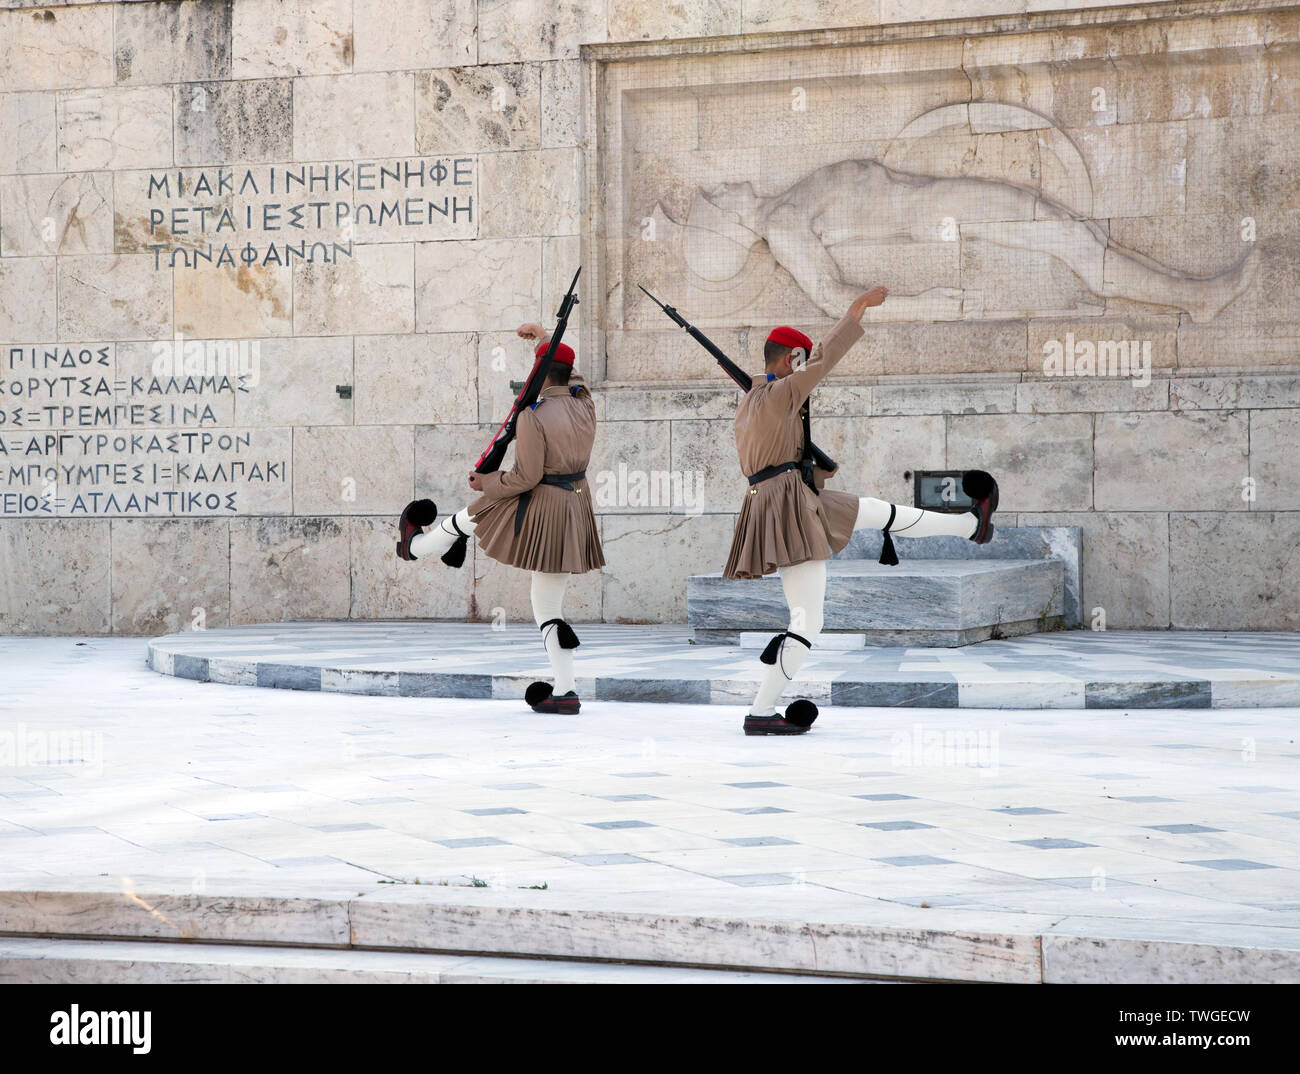 Changing of the Guard at the Tomb of the Unknown Soldier in Athens, Greece Stock Photo